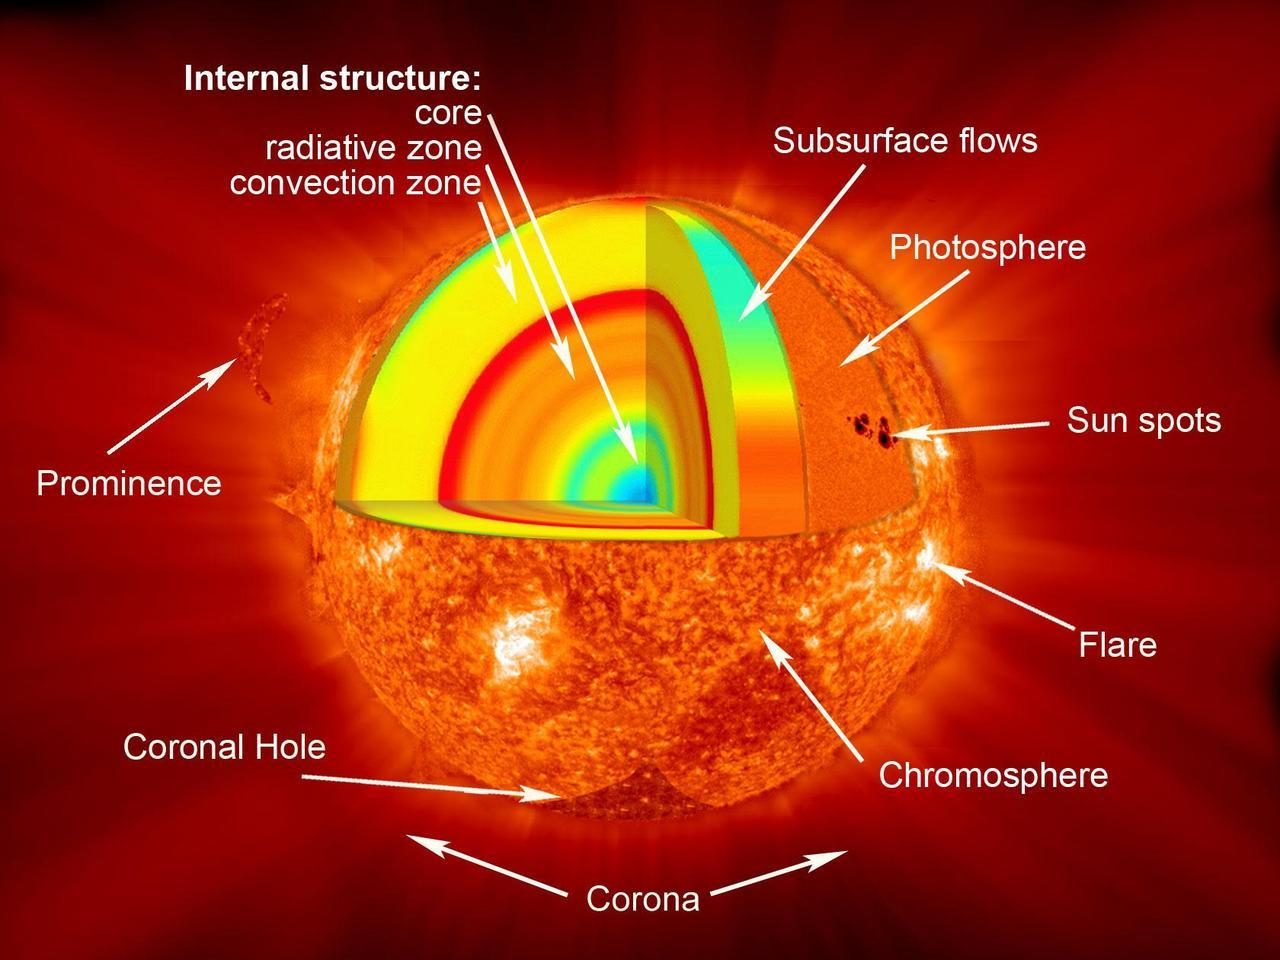 "cozydark:  Sounding Rocket Mission to Observe Magnetic Fields On the Sun | On July 5, NASA launched a mission called the Solar Ultraviolet Magnetograph Investigation or SUMI, to study the intricate, constantly changing magnetic fields on the sun in a hard-to-observe area of the sun's low atmosphere called the chromosphere. Magnetic fields, and the intense magnetic energy they help marshal, lie at the heart of how the sun can create huge explosions of light such as solar flares and eruptions of particles such as coronal mass ejections (CMEs). While there are already instruments — both on the ground and flying in space — that can measure these fields, each is constrained to observe the fields on a particular layer of the sun's surface or atmosphere. Moreover, none of them can see the layer SUMI will observe. ""What's novel with this instrument is that it observes ultraviolet light, when all the others look at infrared or visible light,"" says Jonathan Cirtain, a solar scientist at NASA's Marshall Space Flight Center in Huntsville, Ala. and the principal investigator for SUMI. ""Those wavelengths of light correspond to the lowest levels in the sun's atmosphere, but SUMI will look at locations higher in the chromosphere."" The chromosphere is a narrow layer above the photosphere that raises in temperature with height. Normally, it can't be seen by the naked eye because the light from the photosphere of the Sun overpowers it. The coloring of the chromosphere (deep red) is caused by the immense hydrogen supply it contains. continue reading"